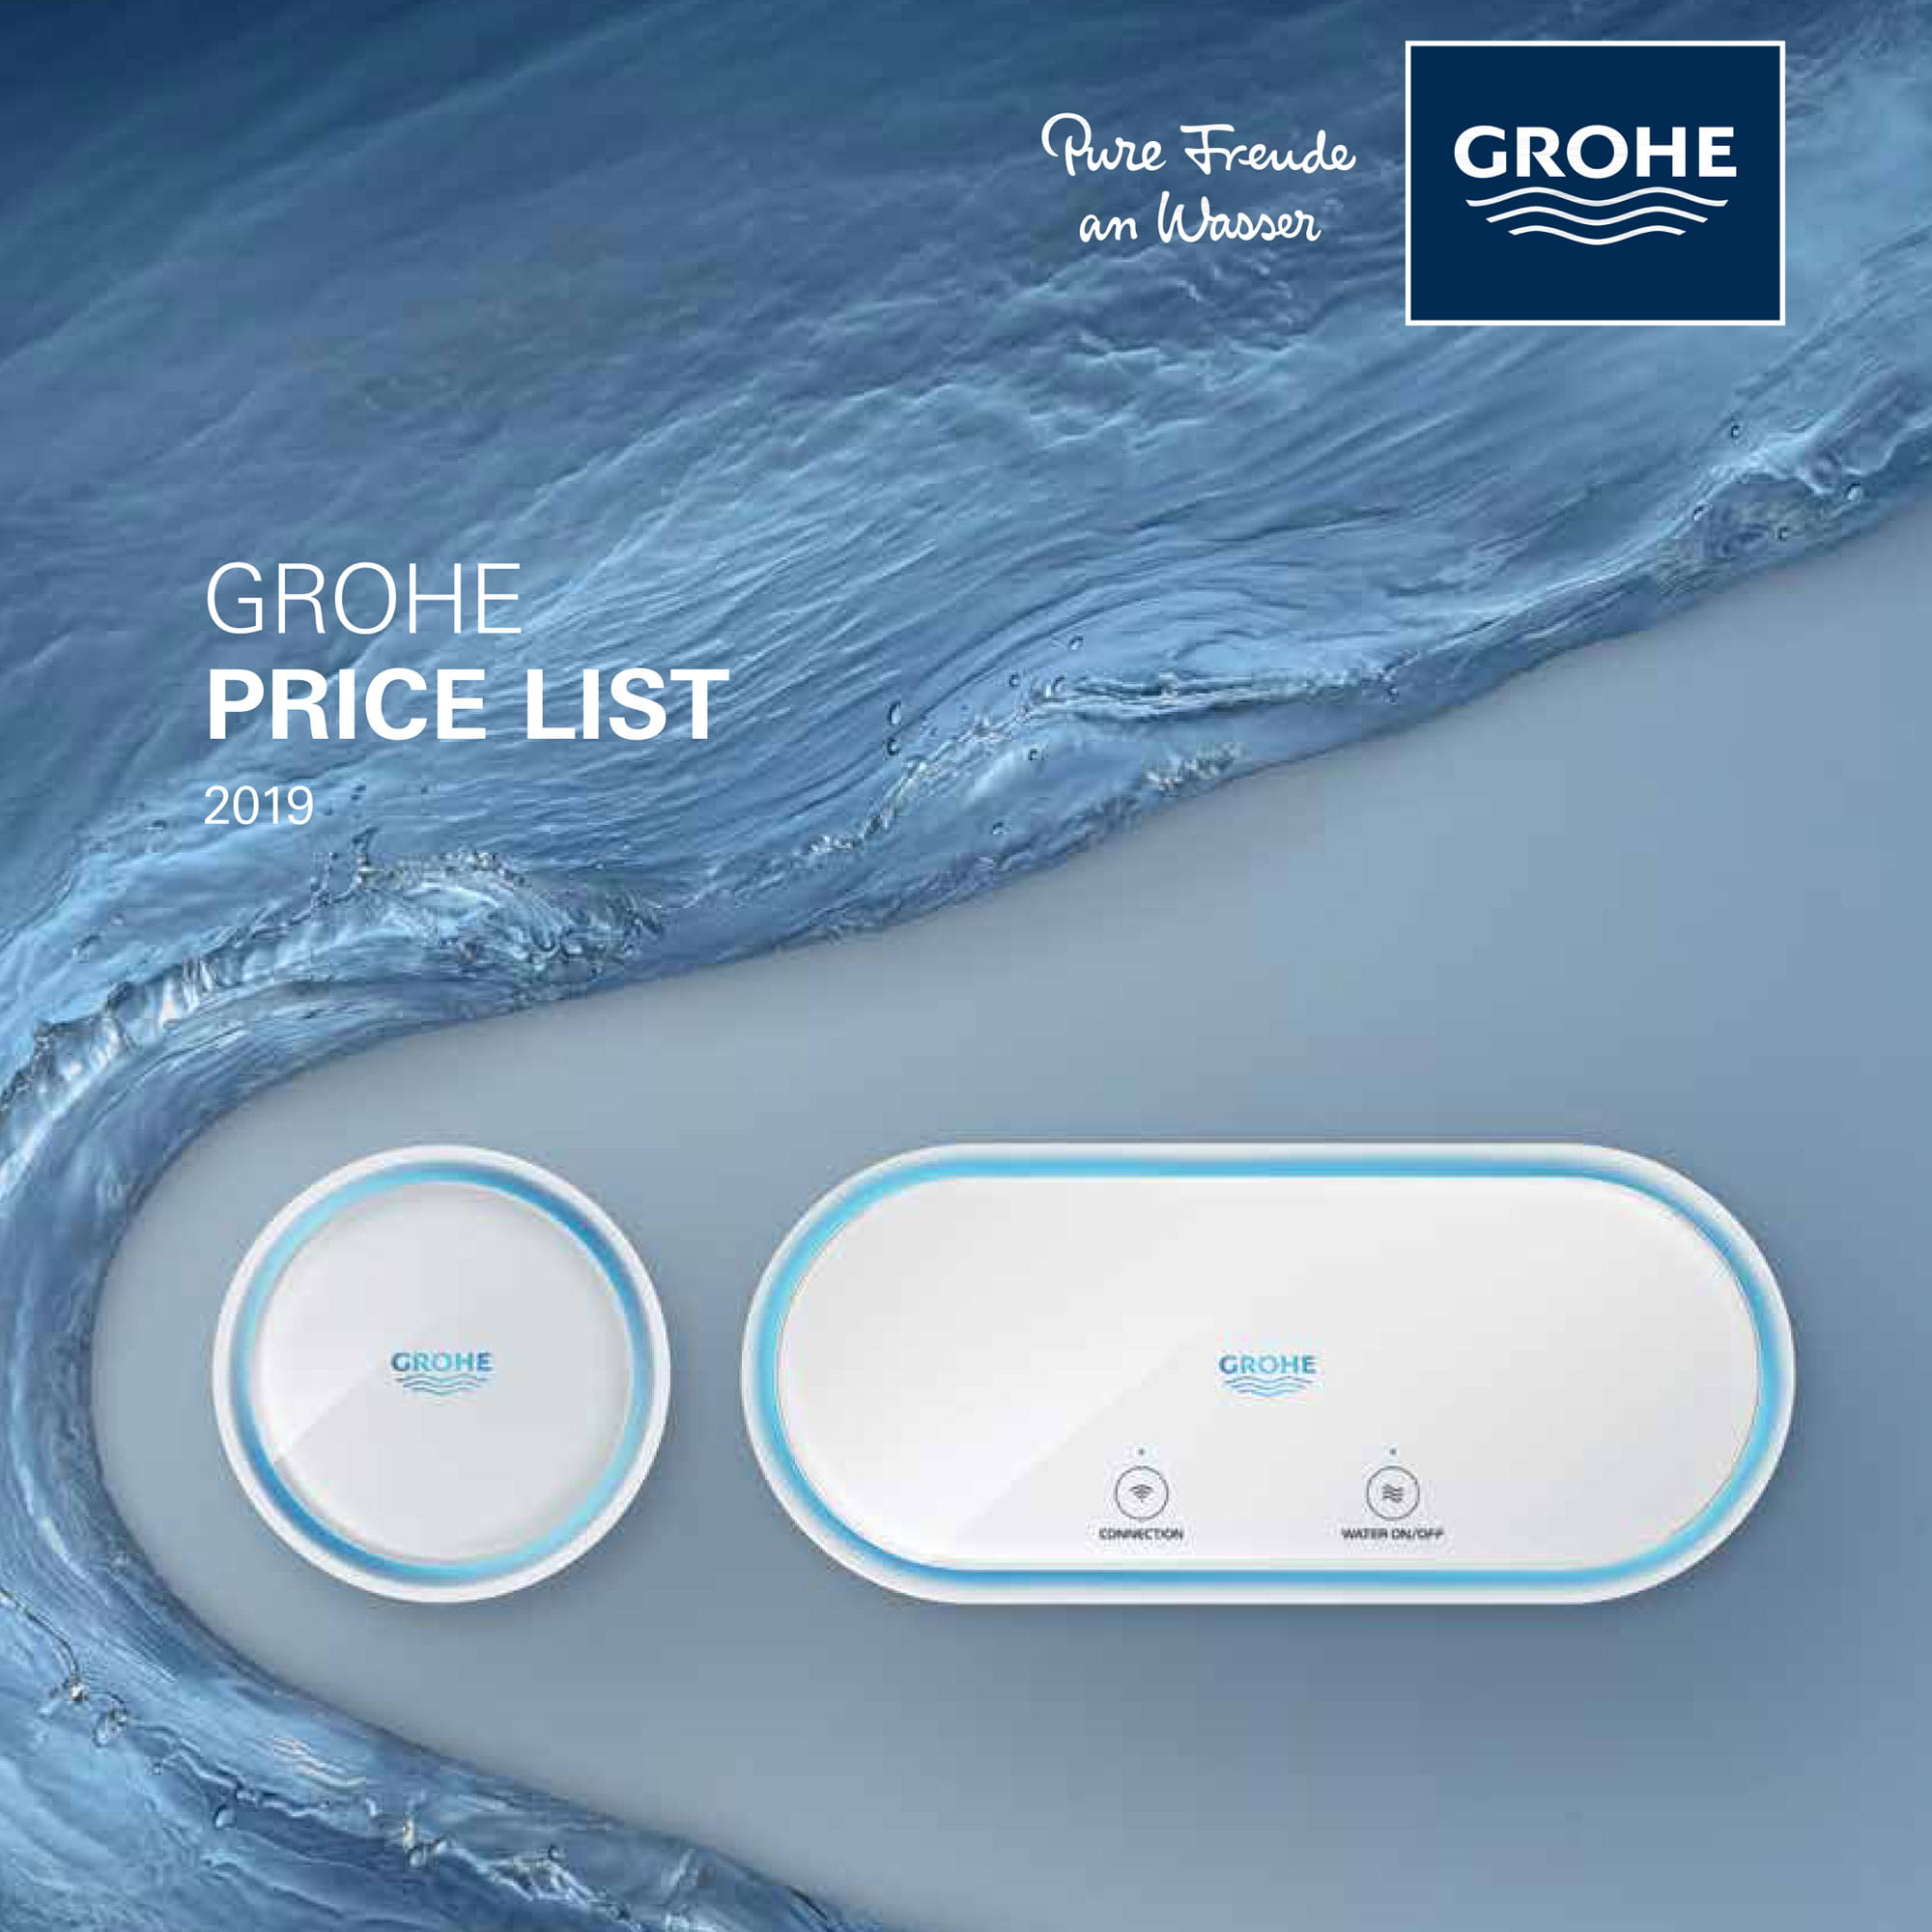 GROHE Sense surrounded by water